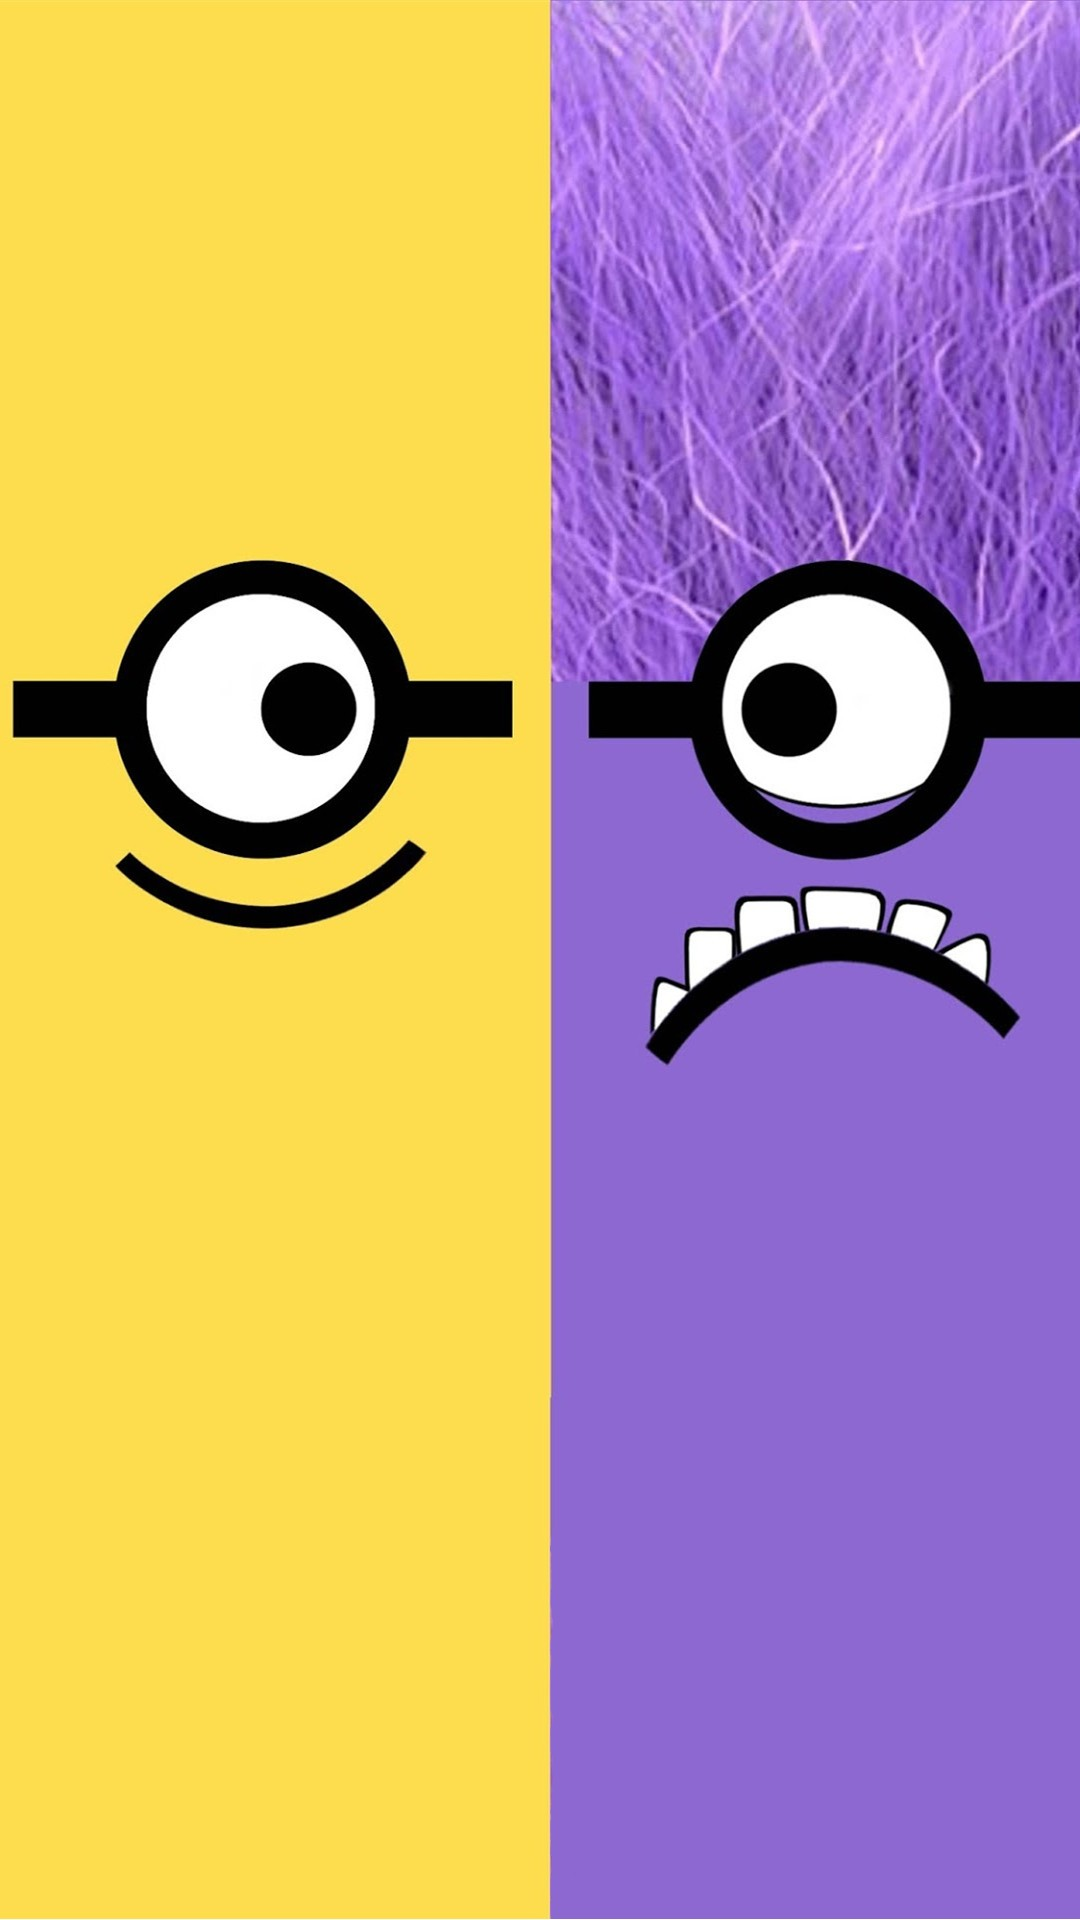 Despicable-Me-yellow-and-purple-minion-iphone-plus-HD-for-Halloween-Hallowee-wallpaper-wp424937-1